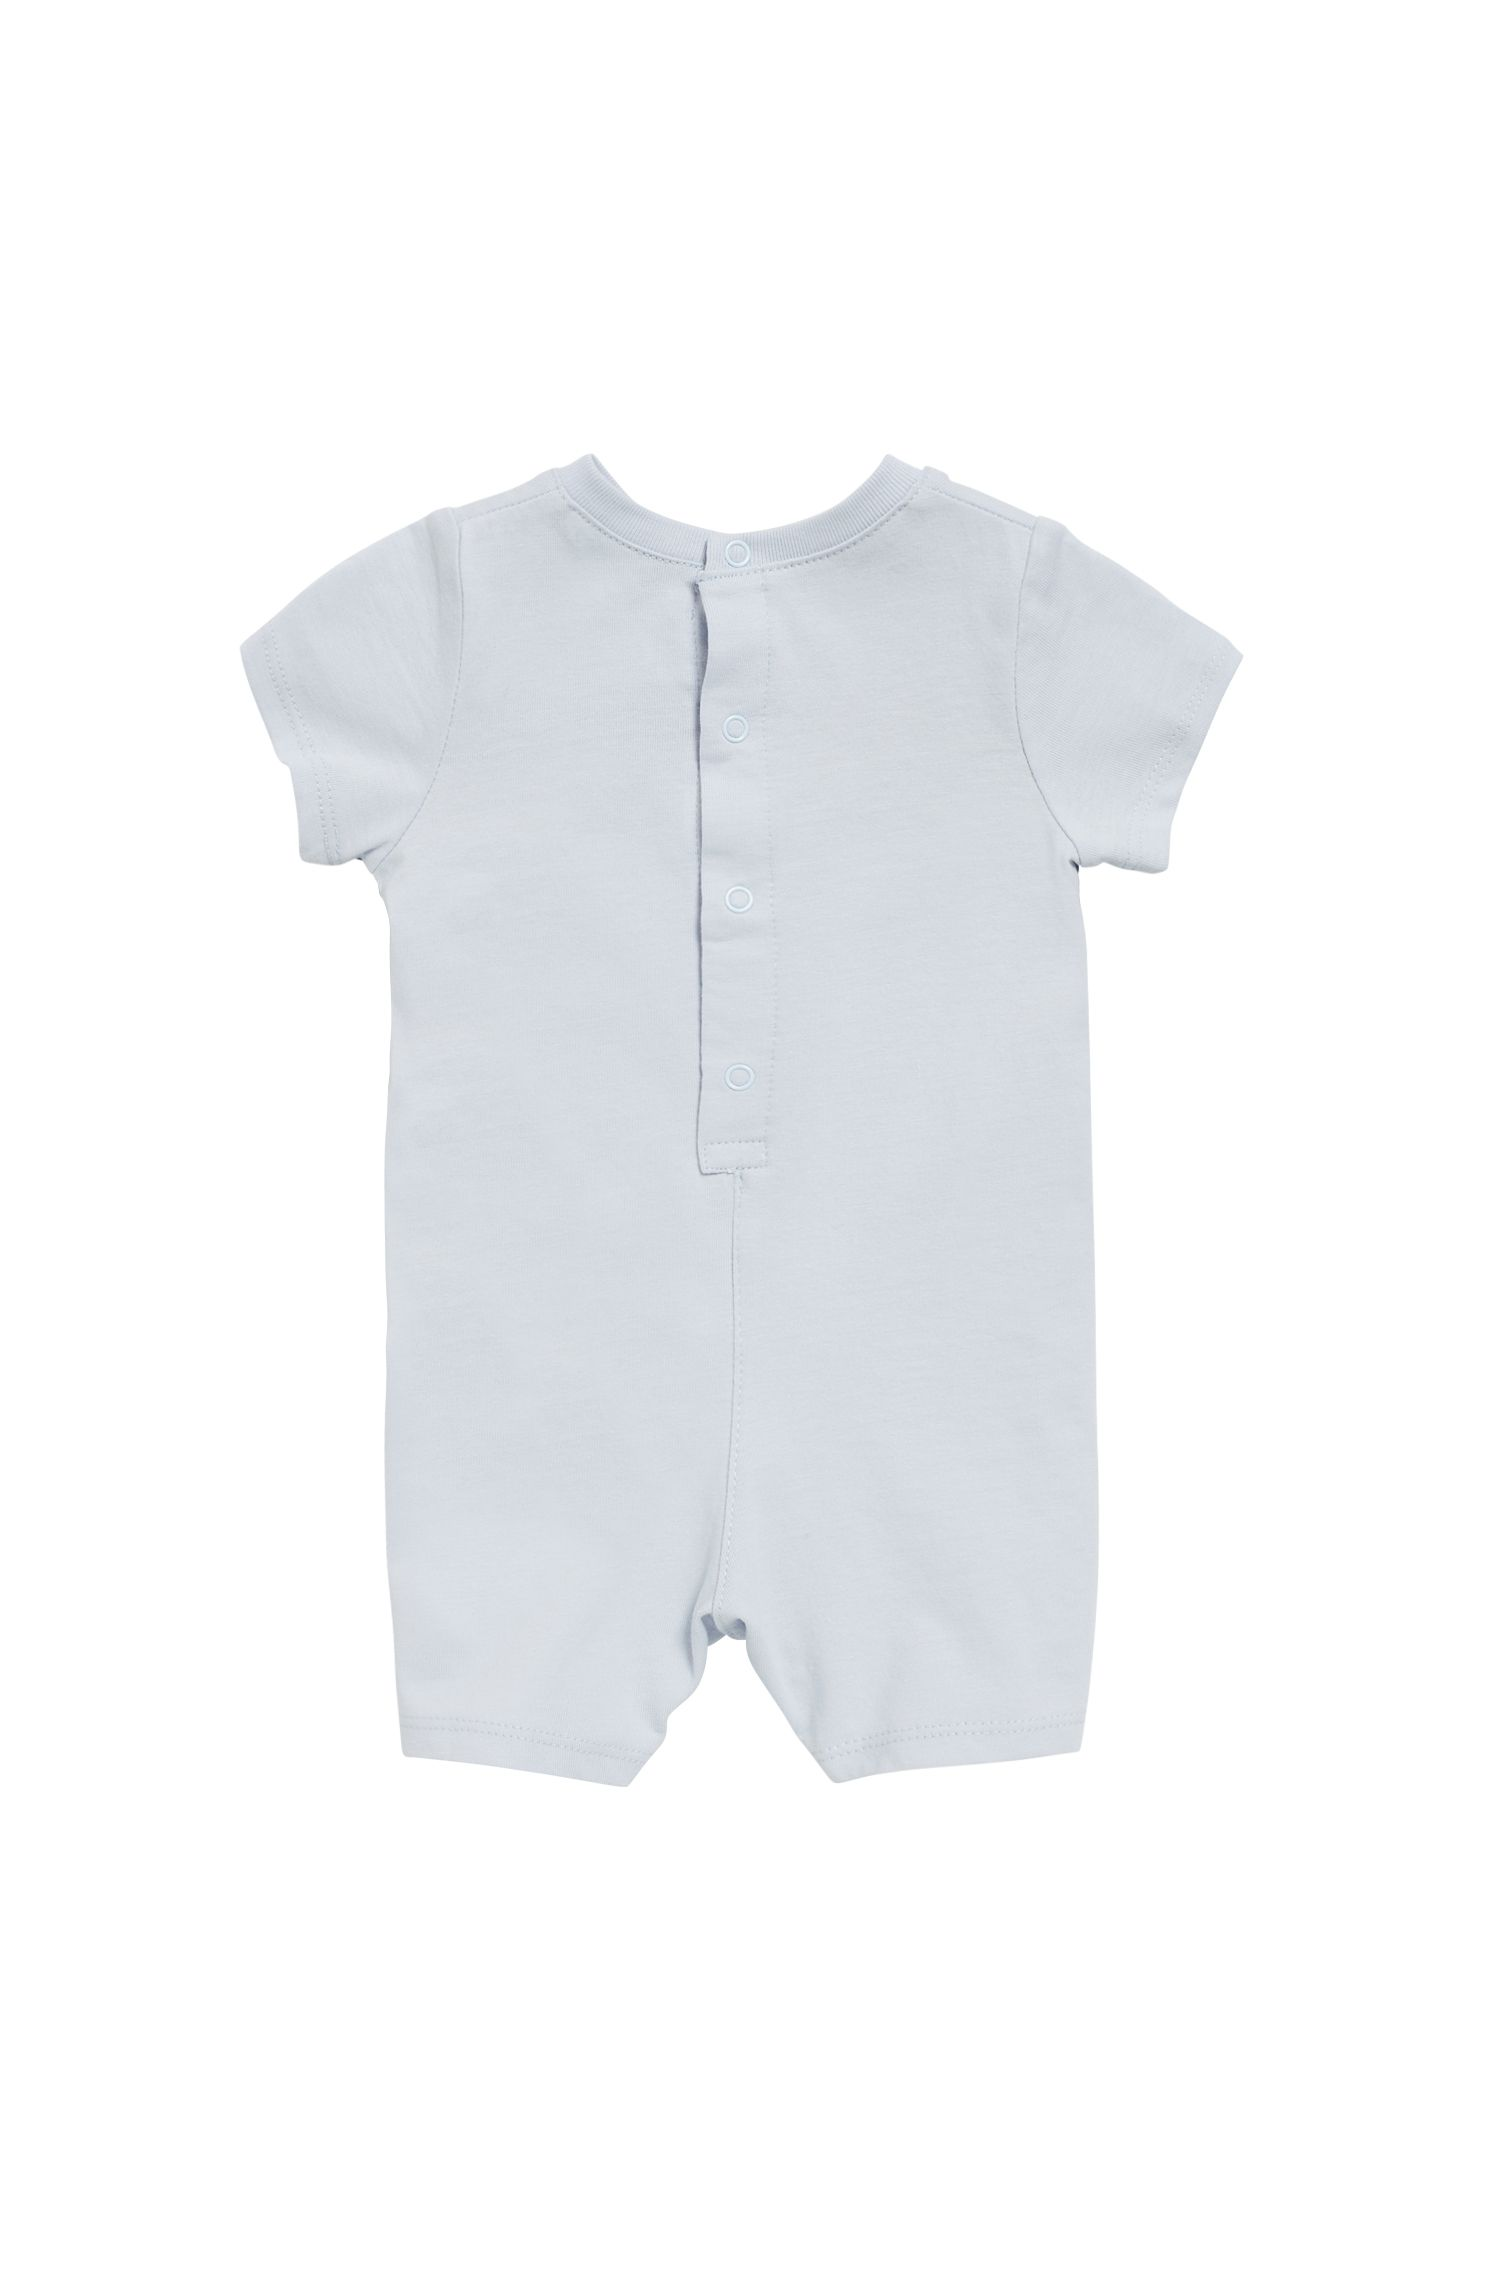 Baby playsuit in cotton jersey